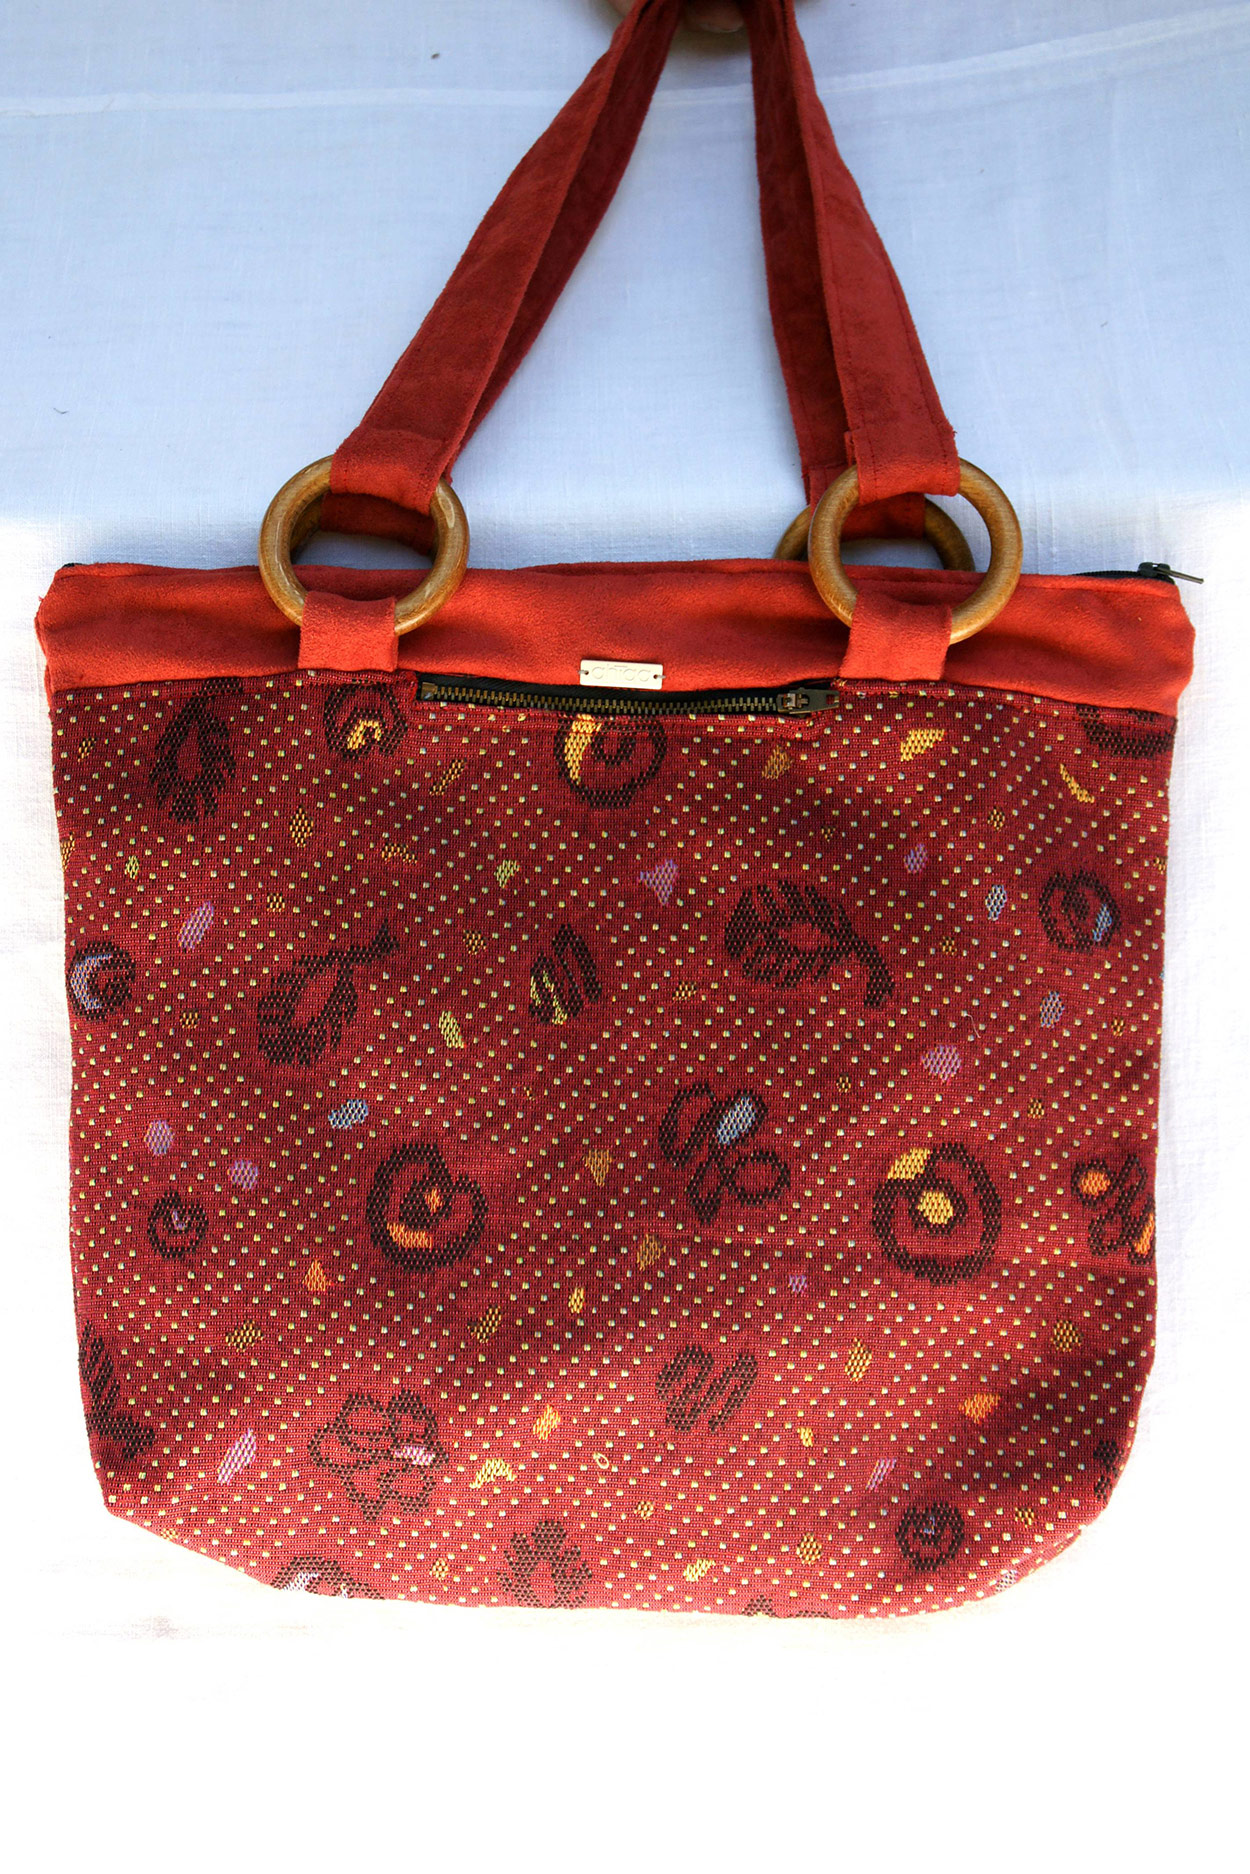 Citybags-(4)